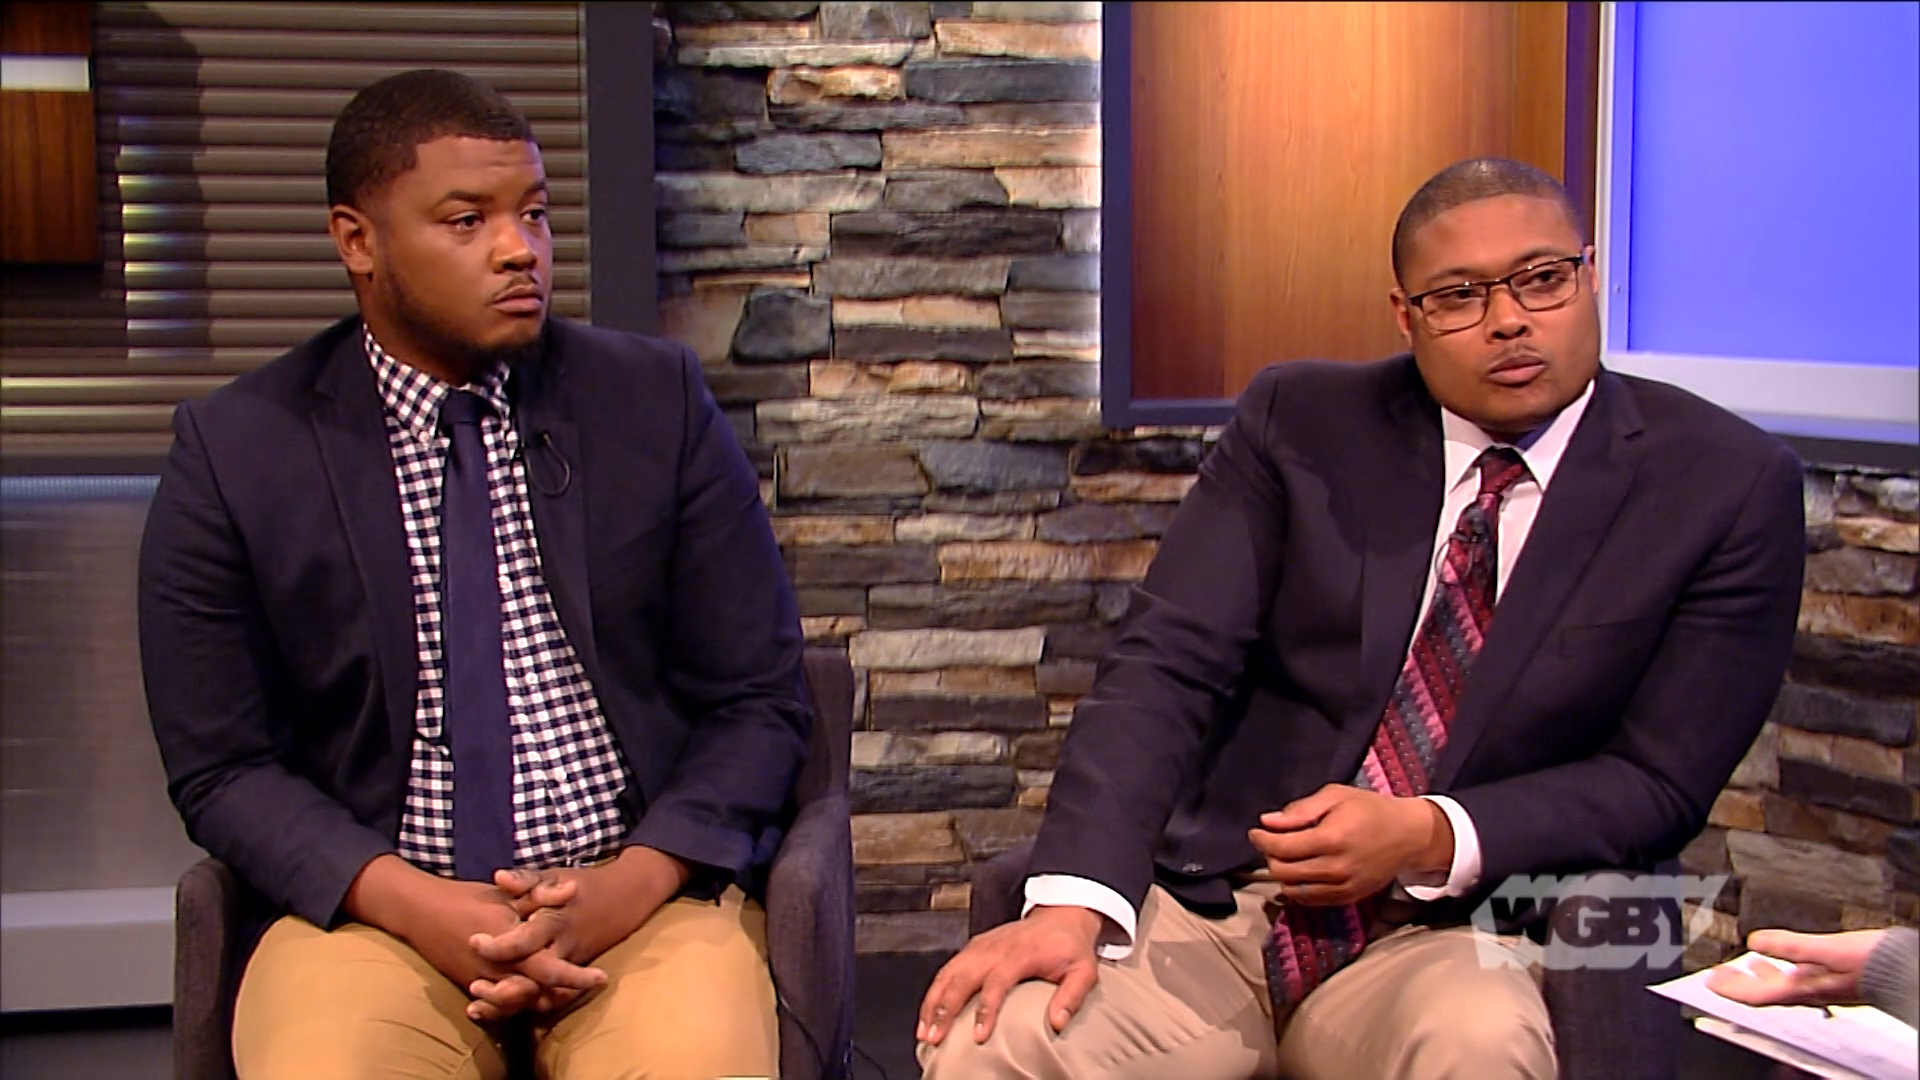 Springfield City Council President Justin Hurst & Vice President Marcus Williams recap what the council worked on in 2019.